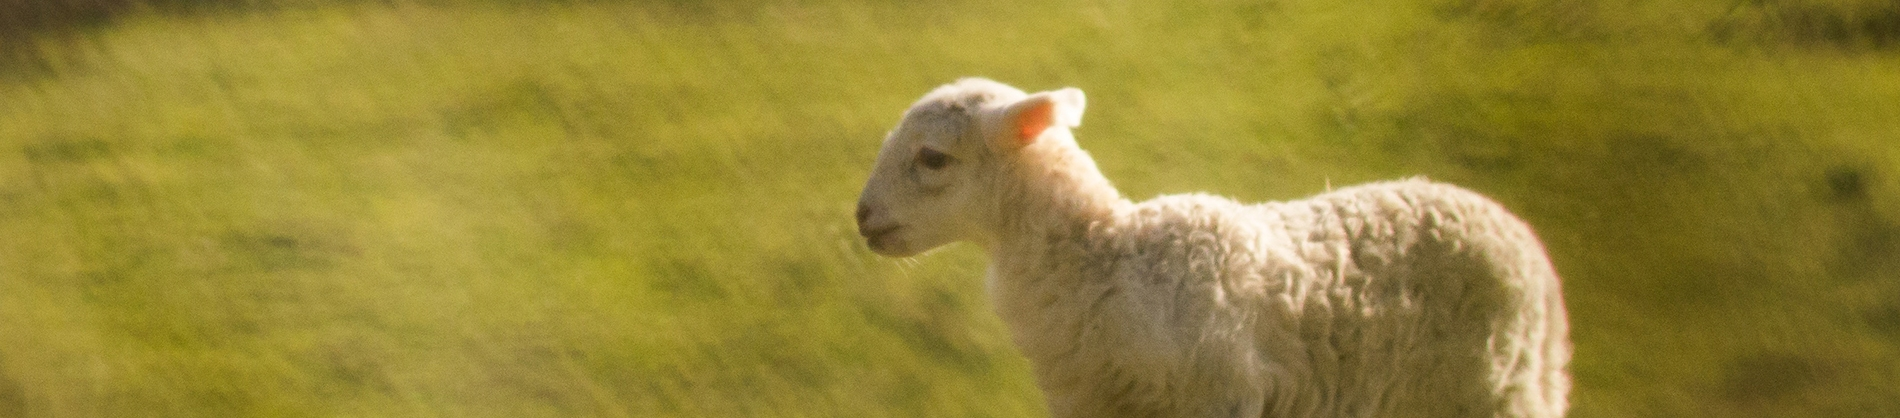 A small lamb in a green field